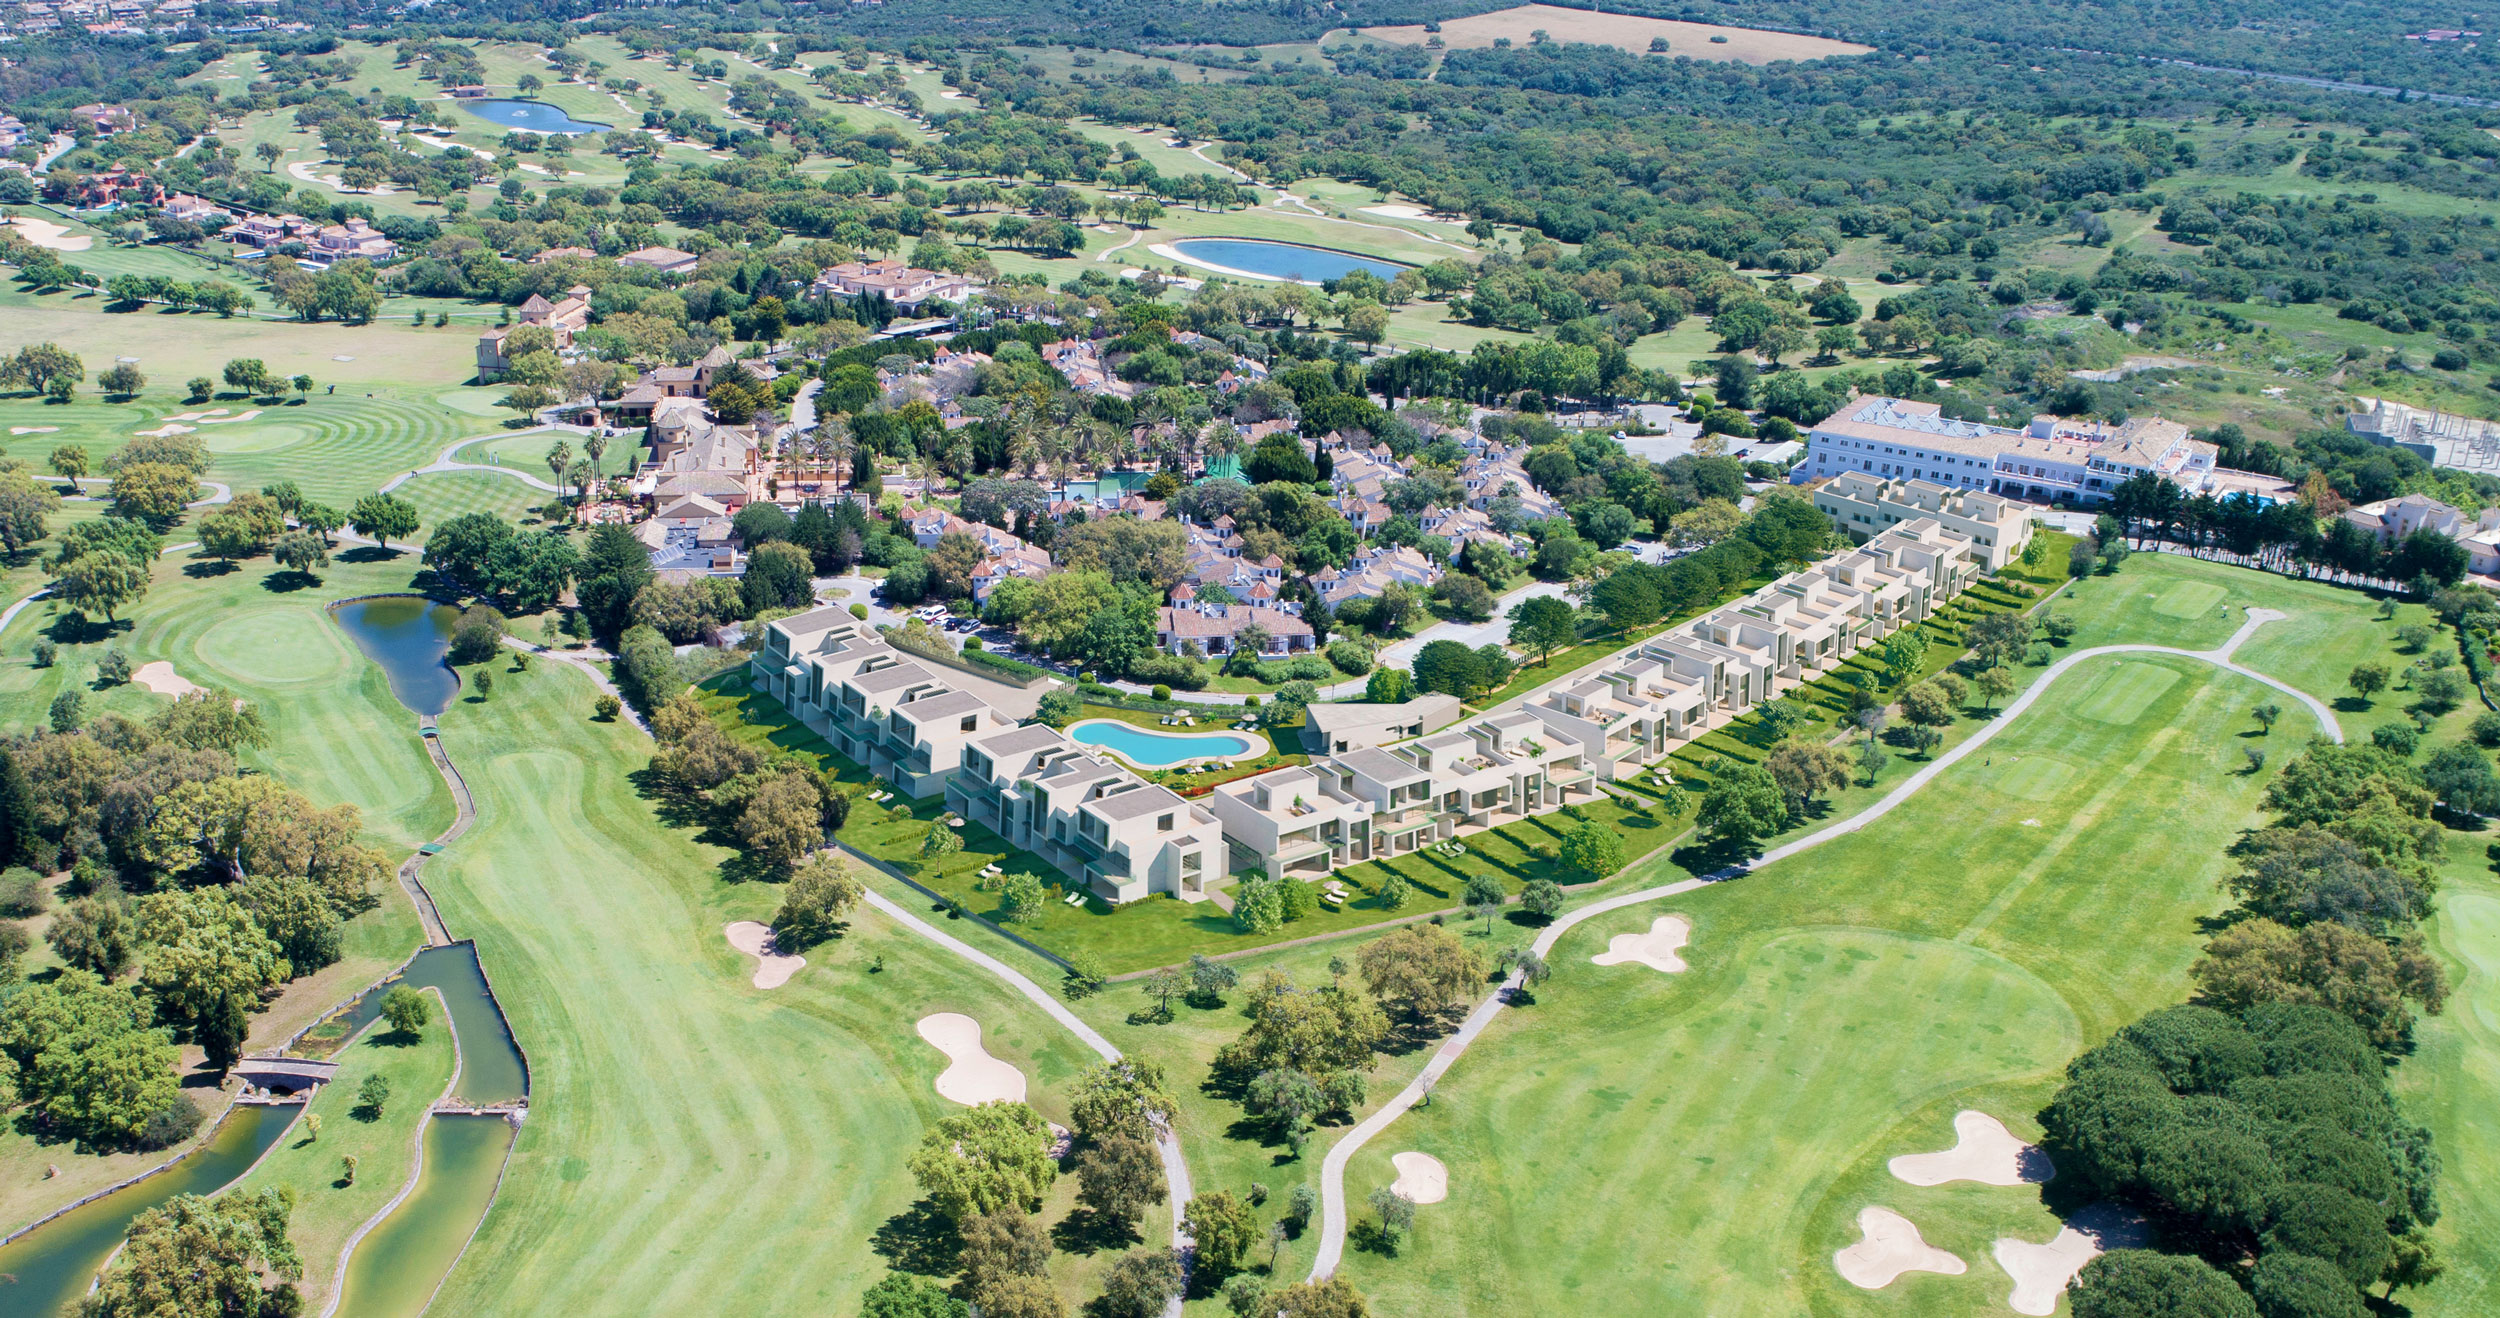 Exclusive terraced houses surrounded by a golf course